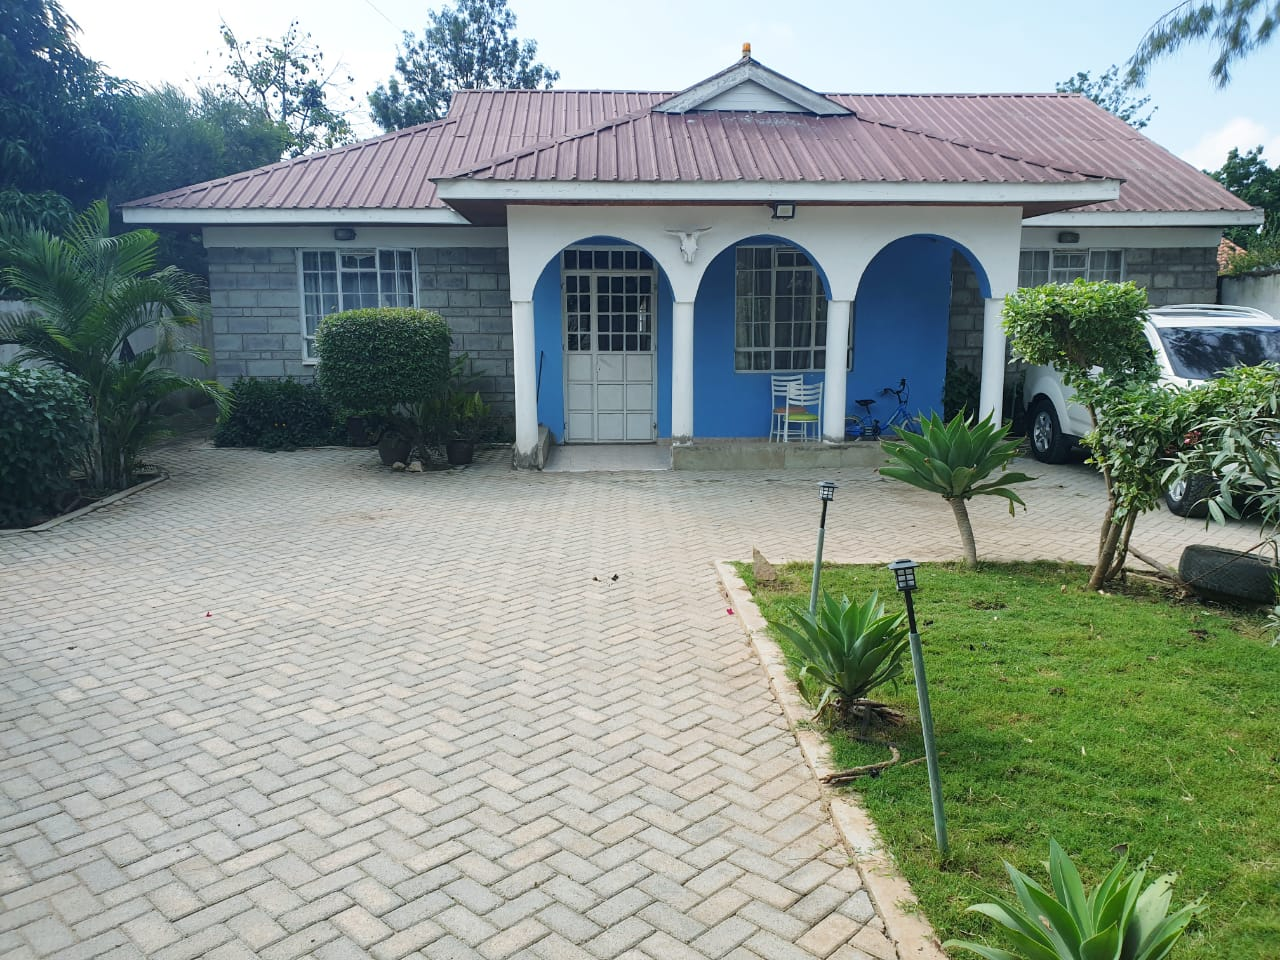 THREE BEDROOM BUNGALOW WITH SQ ON SALE – KITENGELA TOWN